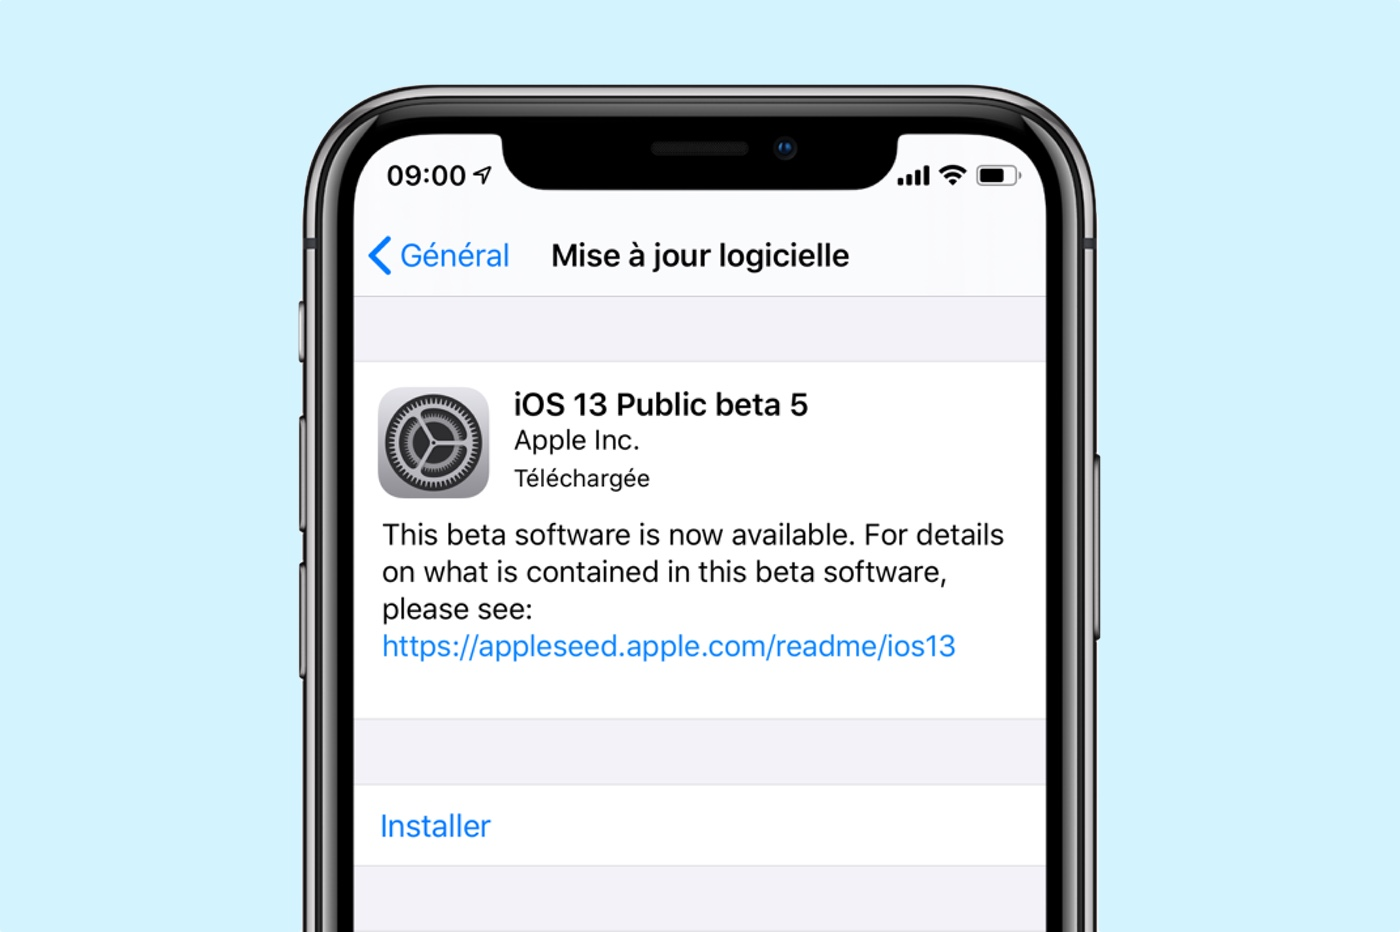 iOS 13 Beta 5 publique